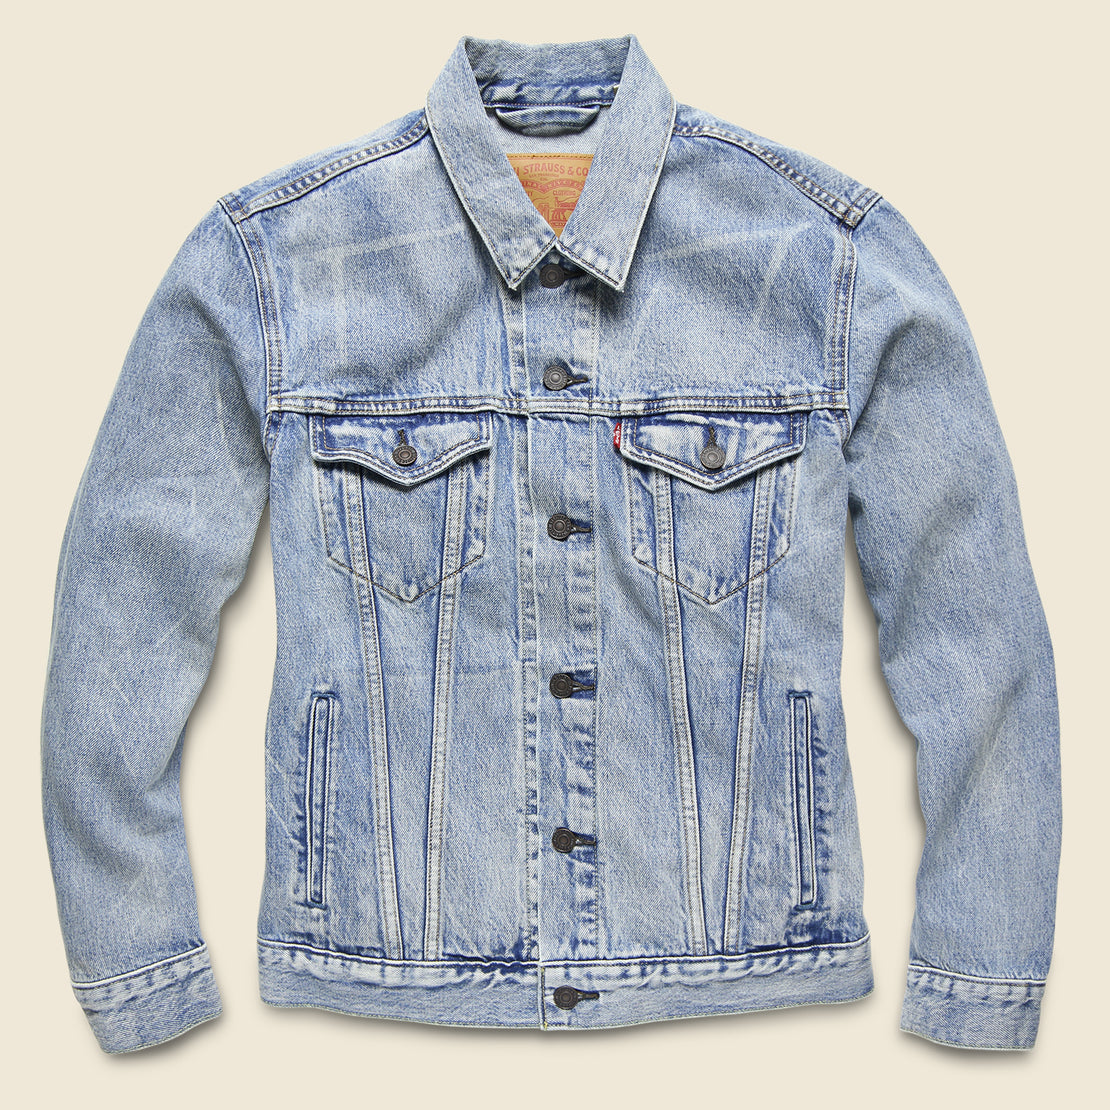 Levi's Red Tab Trucker Jacket - Rolled Up Dollar